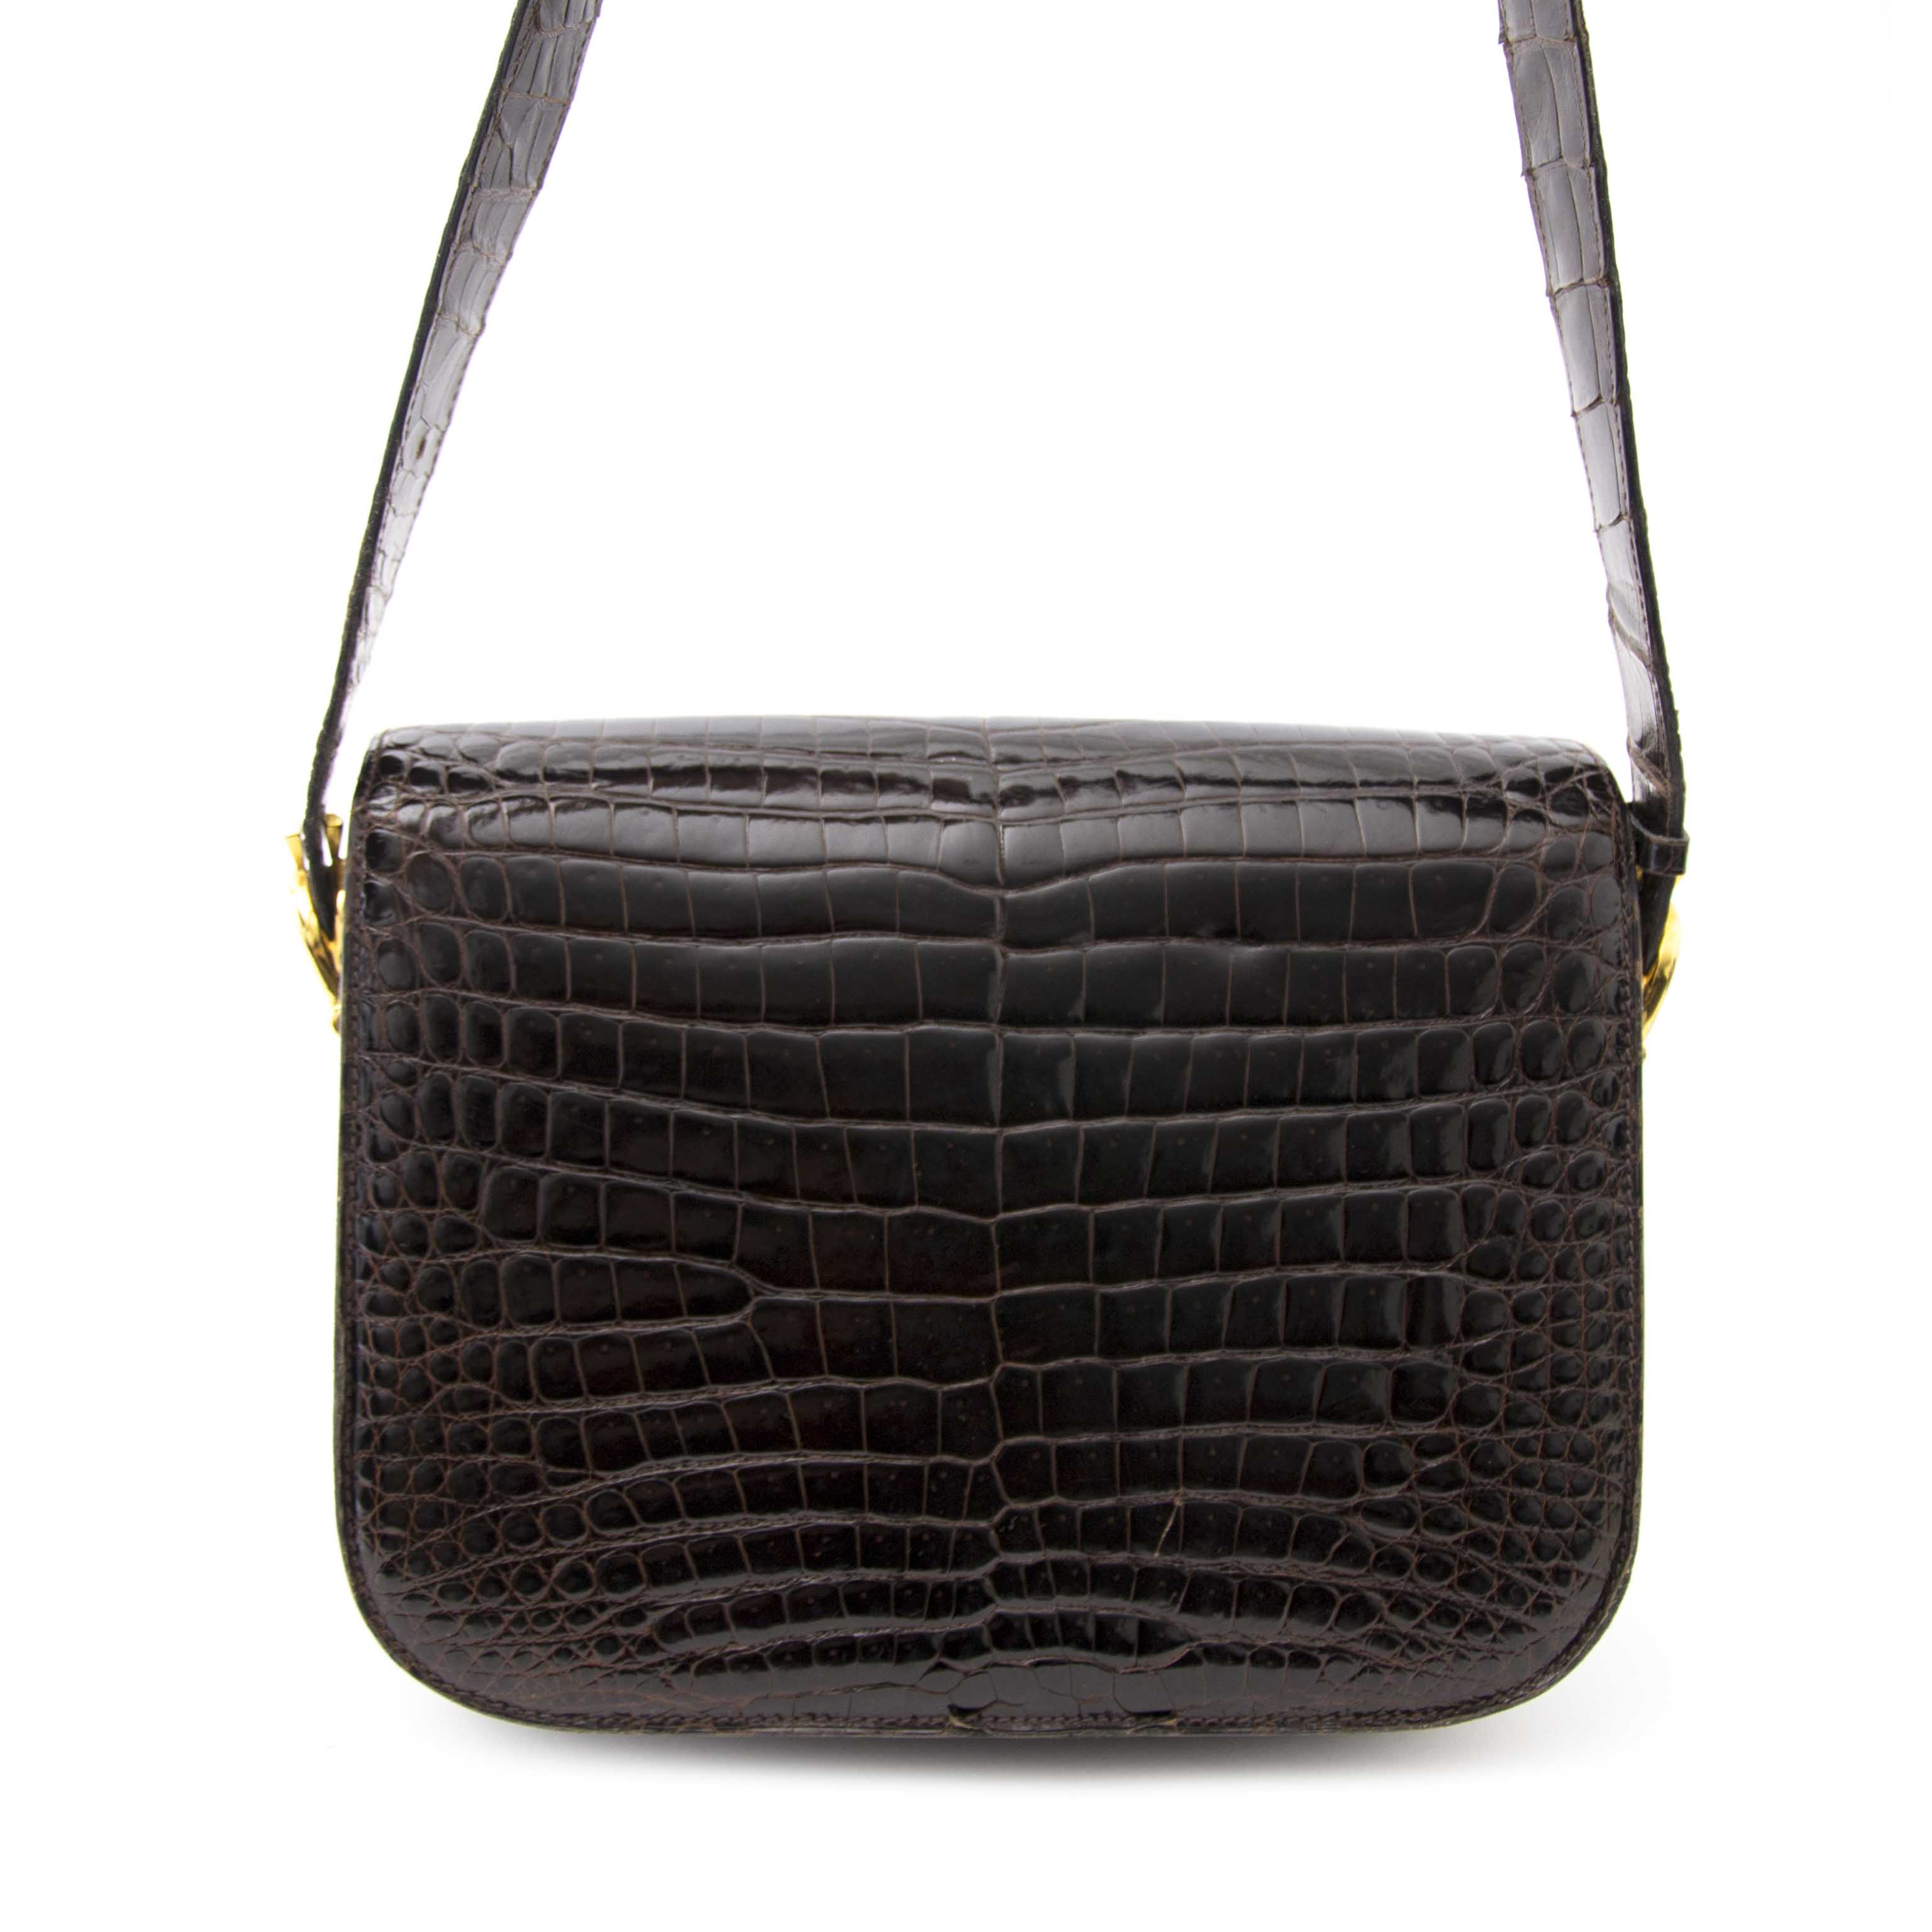 We buy and sell your authentic Céline Vintage Croco Horse Box Bag